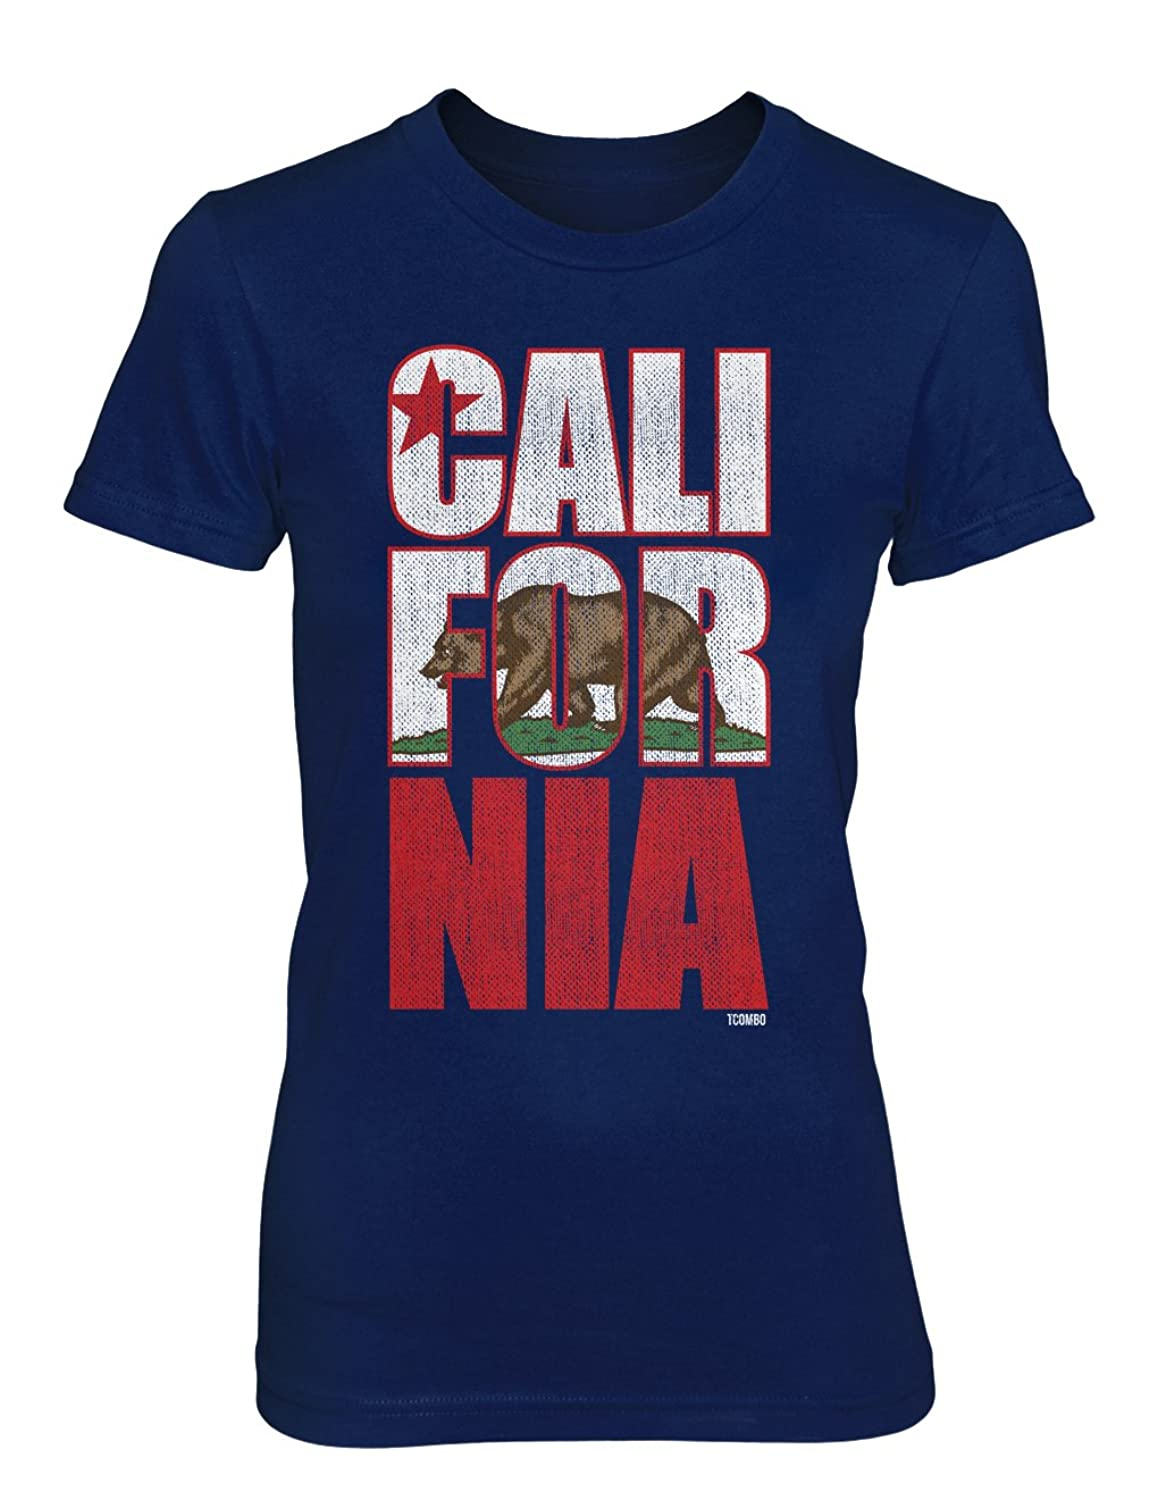 Oversize California Republic - Cali Bear GIRLS / JUNIORS T-shirt державина в а английский язык тренажёр по чтению и письму 4 6 лет